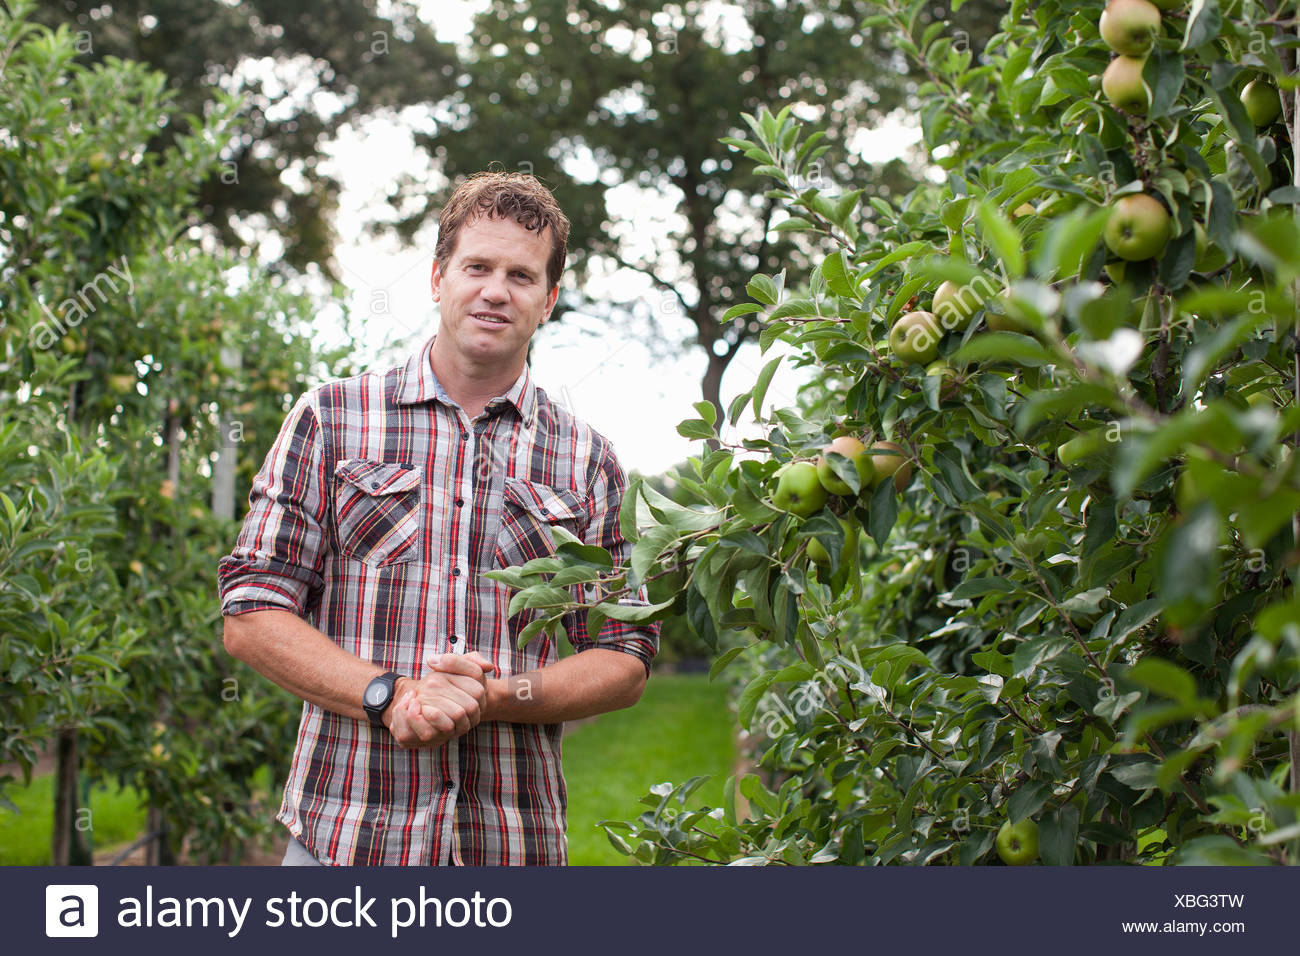 Farmer standing in apple orchard - Stock Image